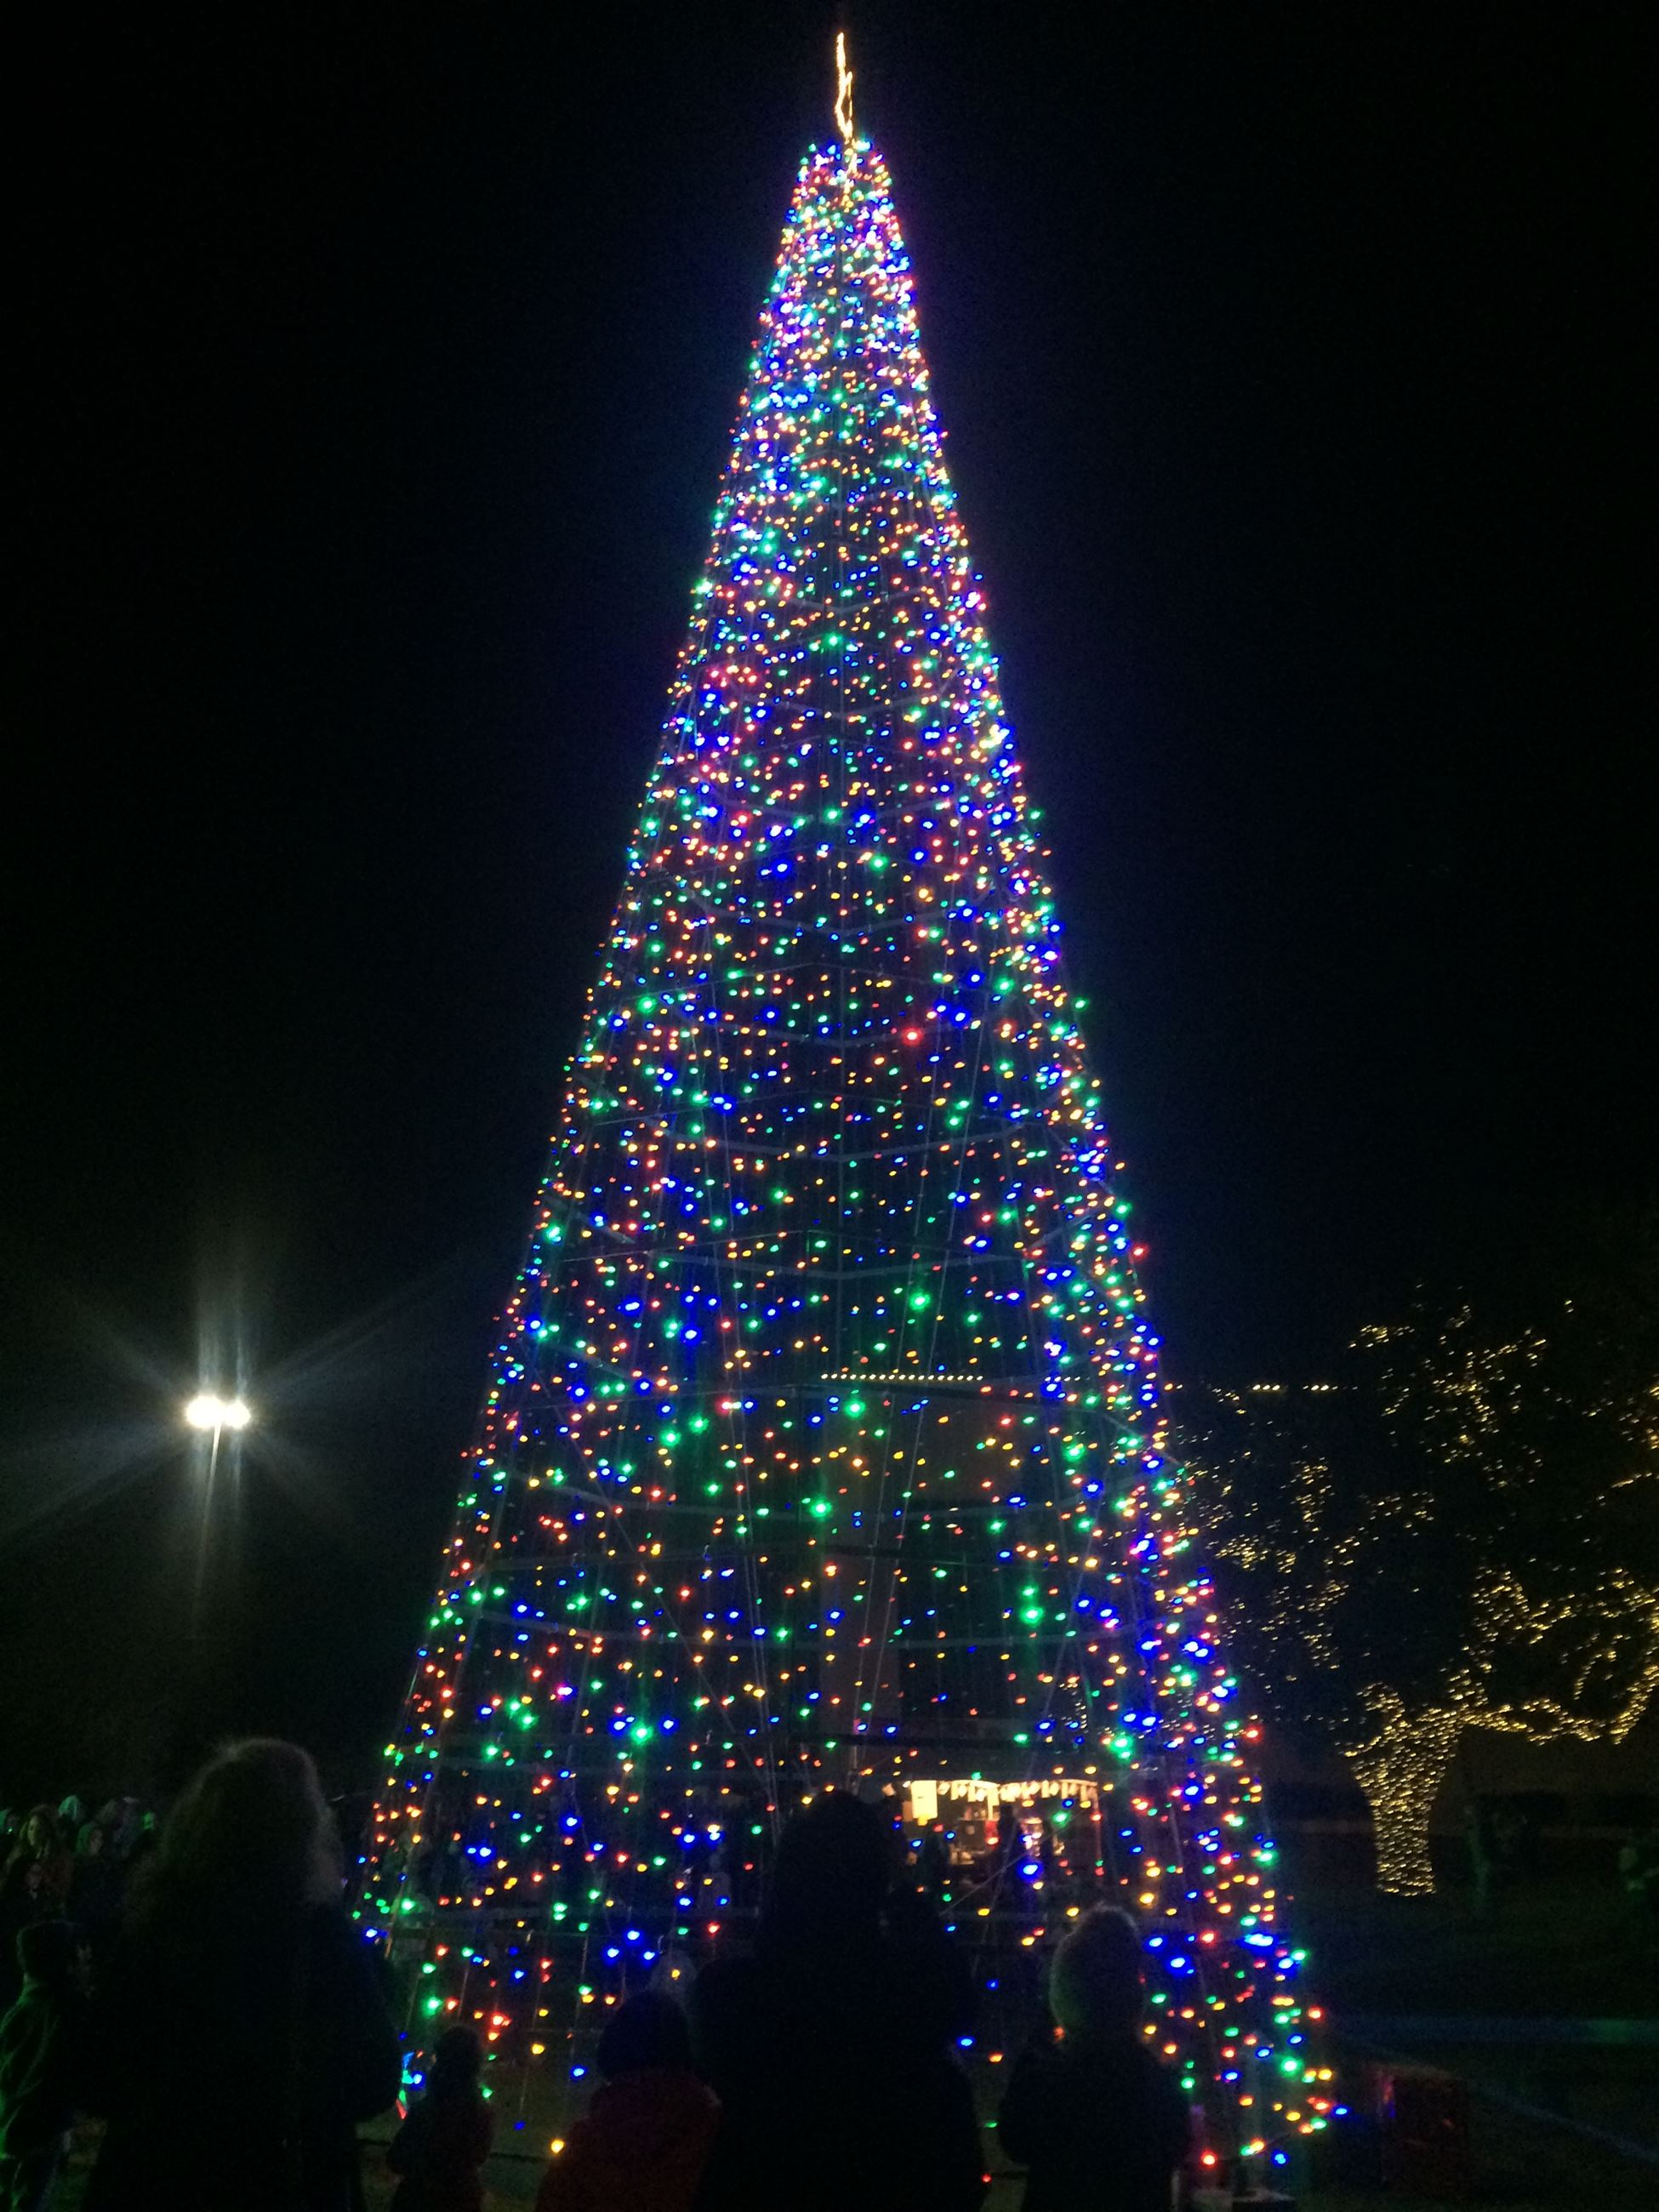 holiday delights at fair park 2015 - Christmas Things To Do In Dallas